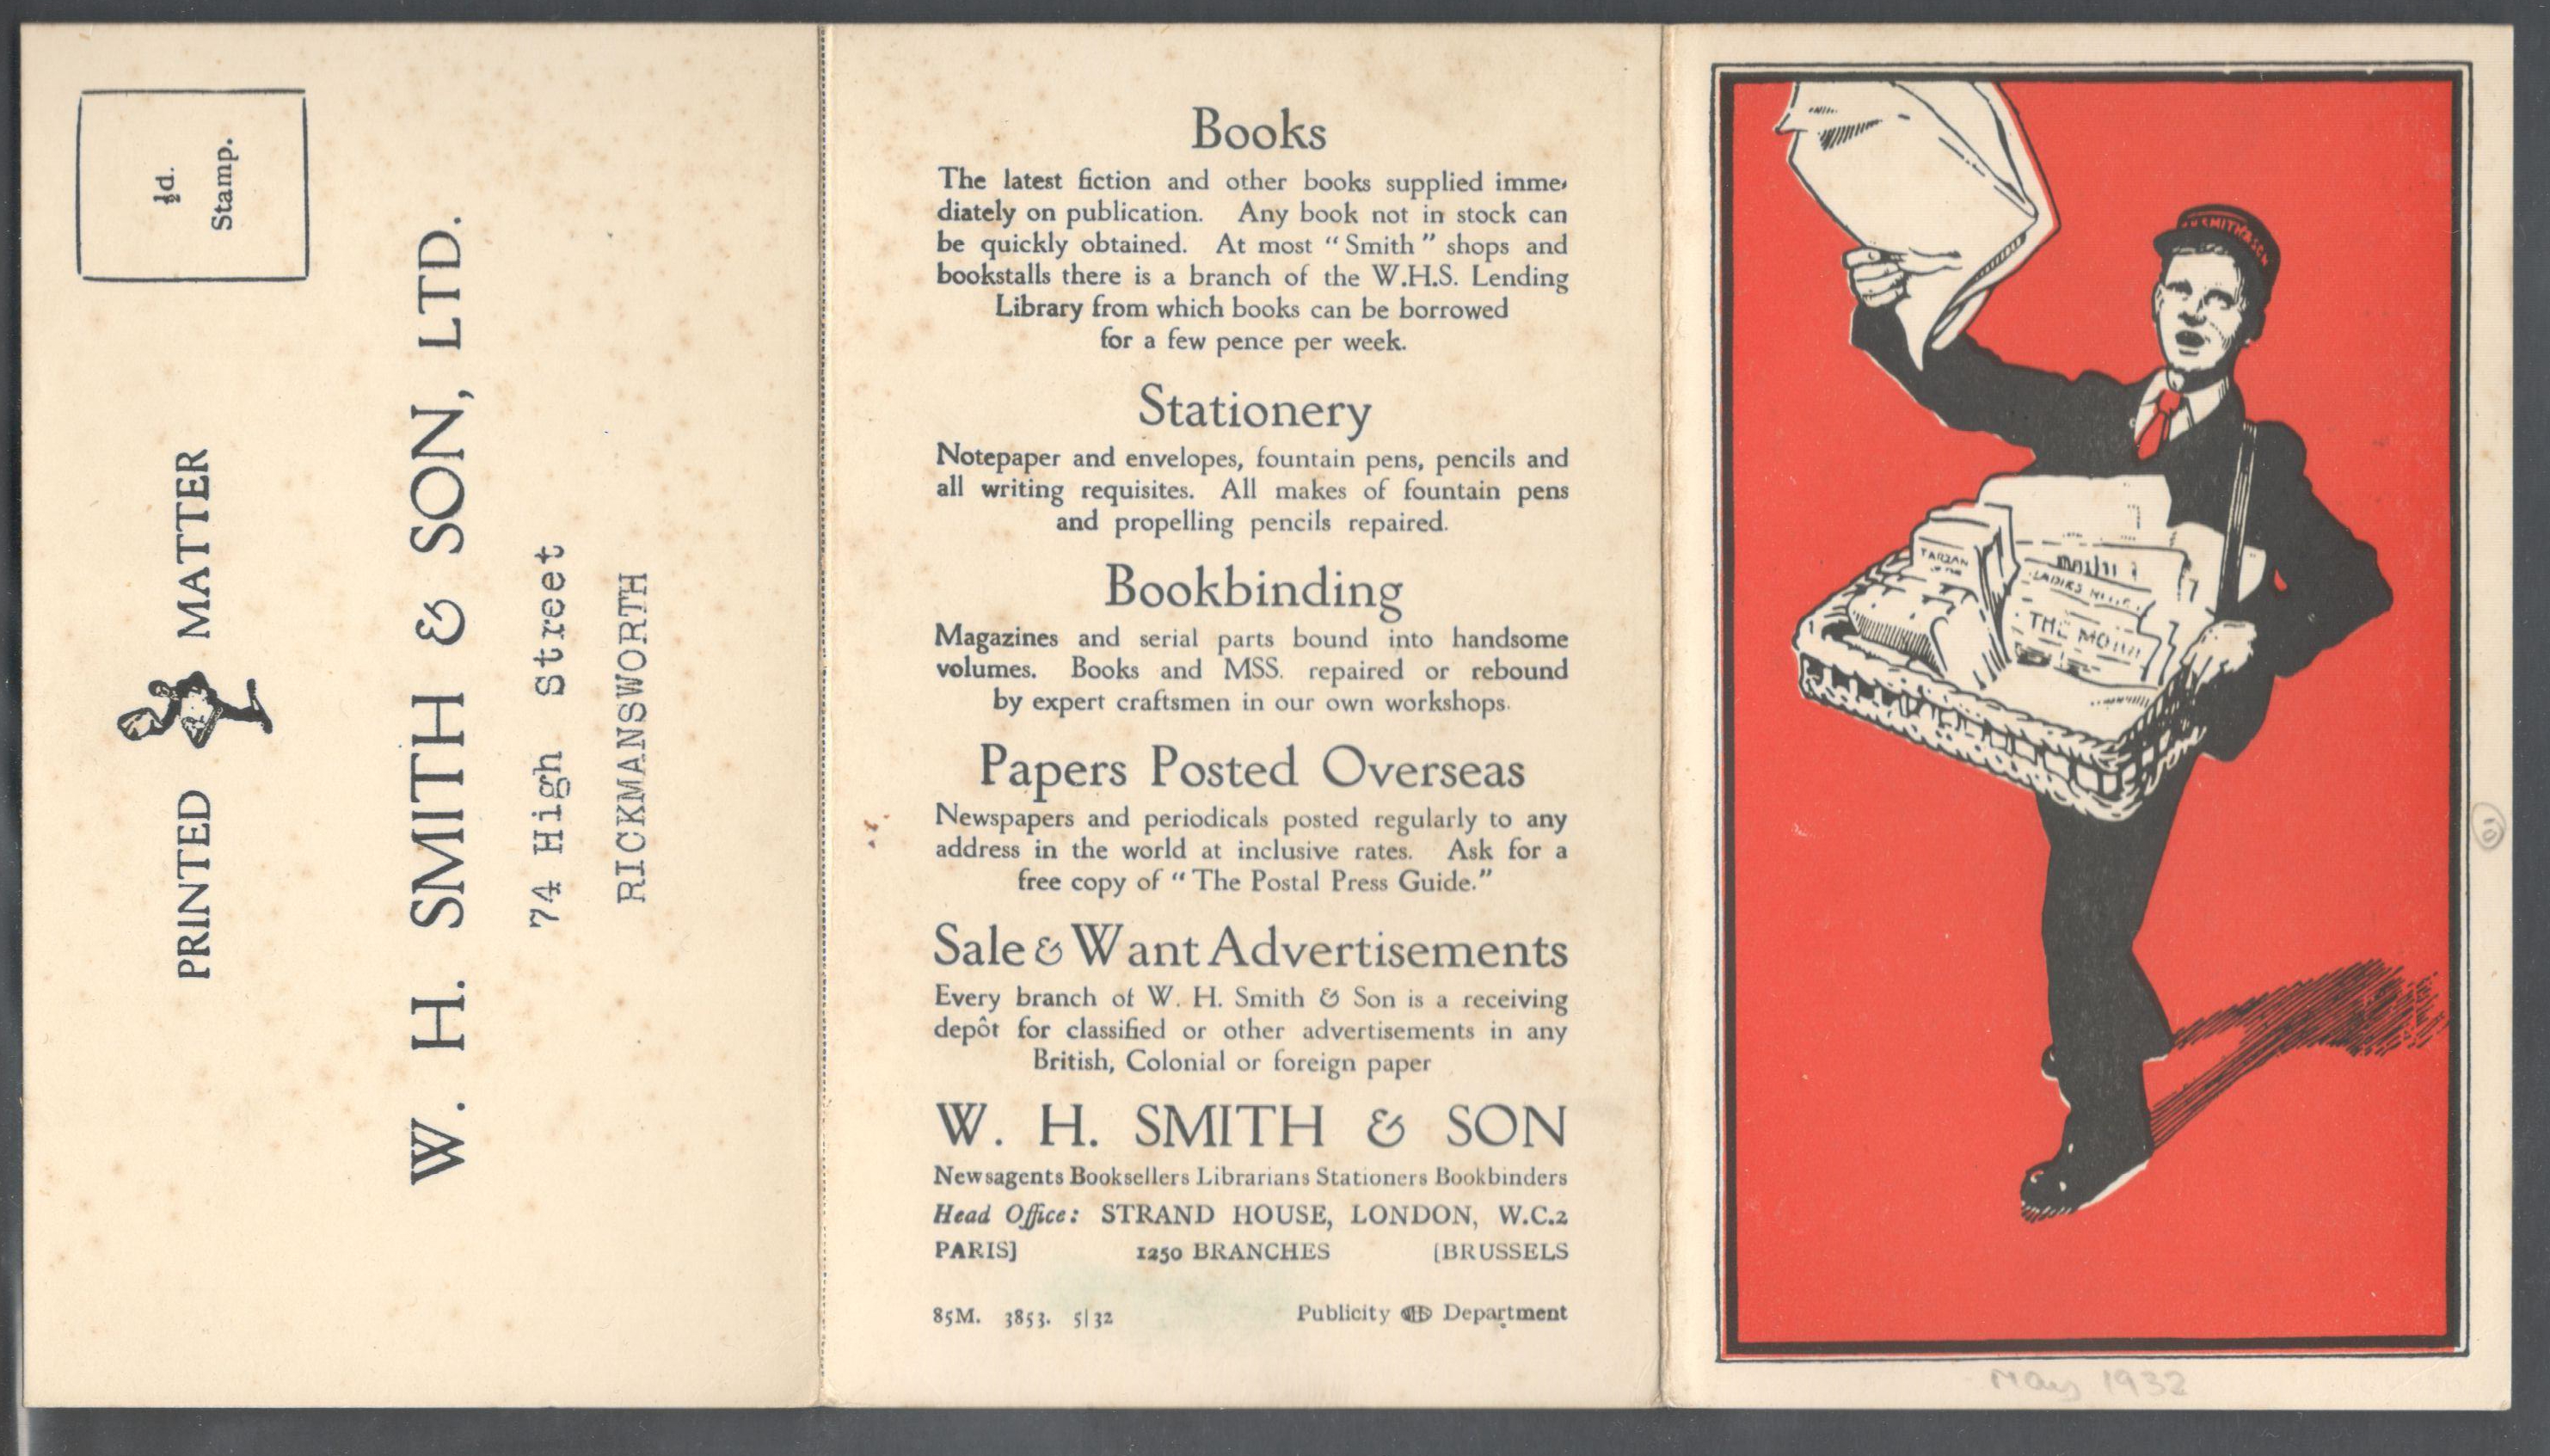 Lot 15 - W.H.SMITH & SON PREPRINTED ADVERTISING LETTER & ORDER FORM